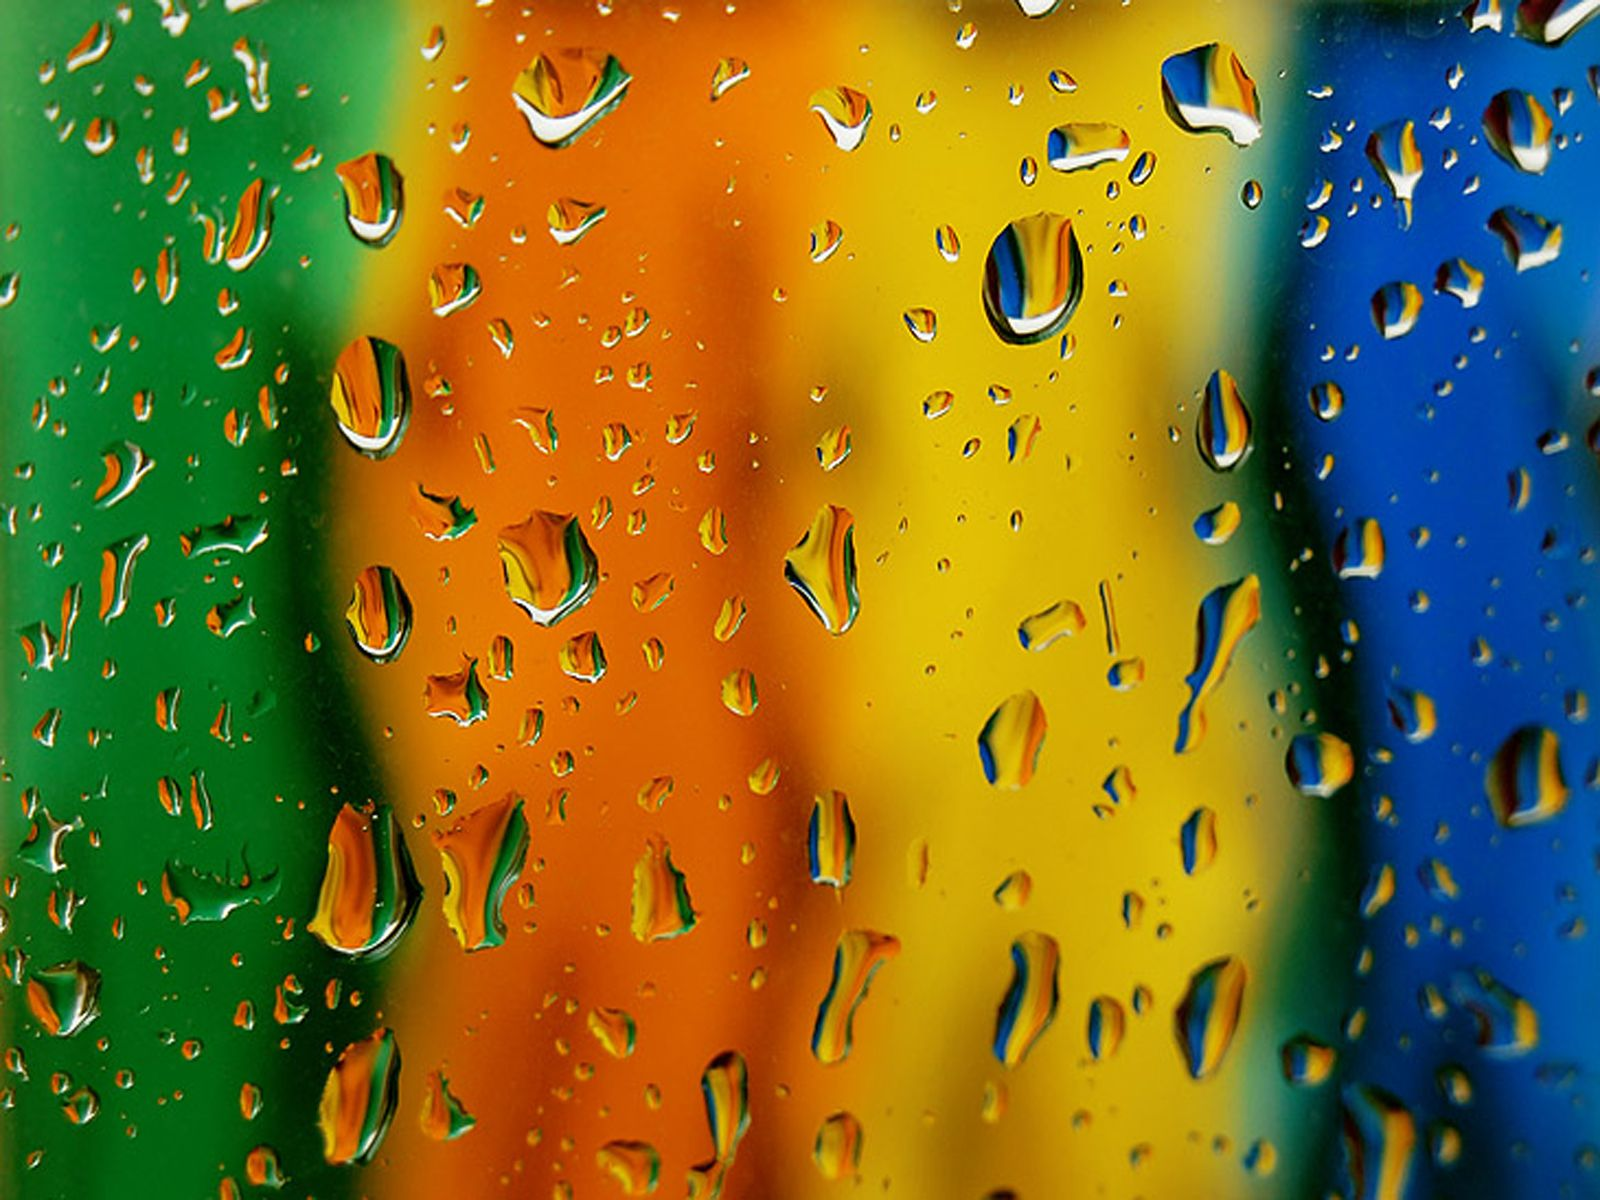 Colorful Water Drops Rainbow Wallpaper Colorful Wallpaper